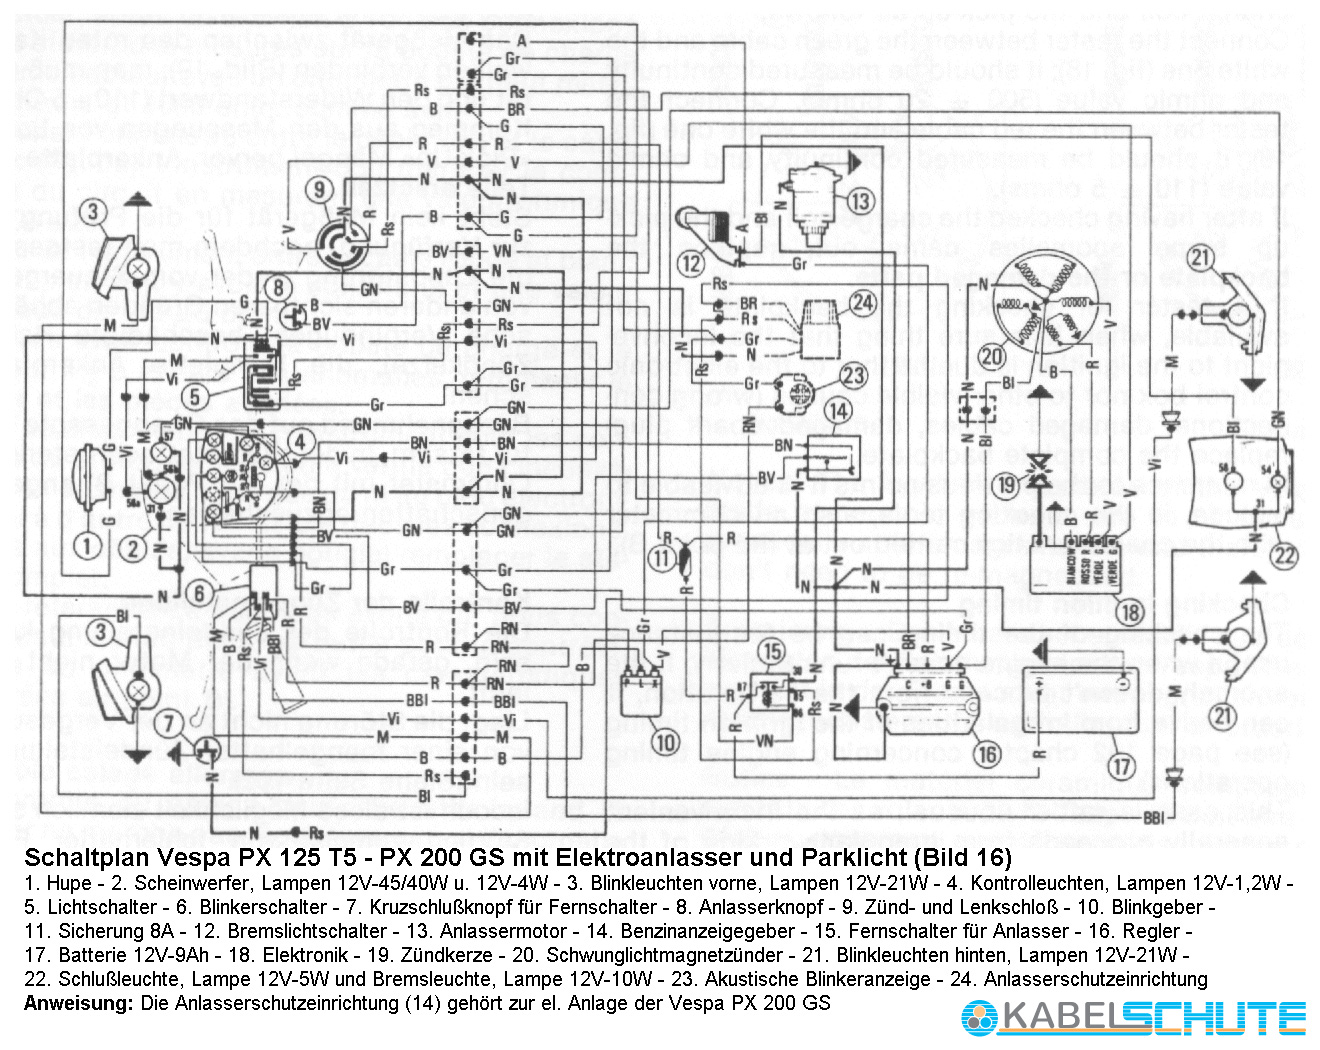 lambretta wiring diagram yamaha grizzly 600 carburetor vespa px 200 27 images